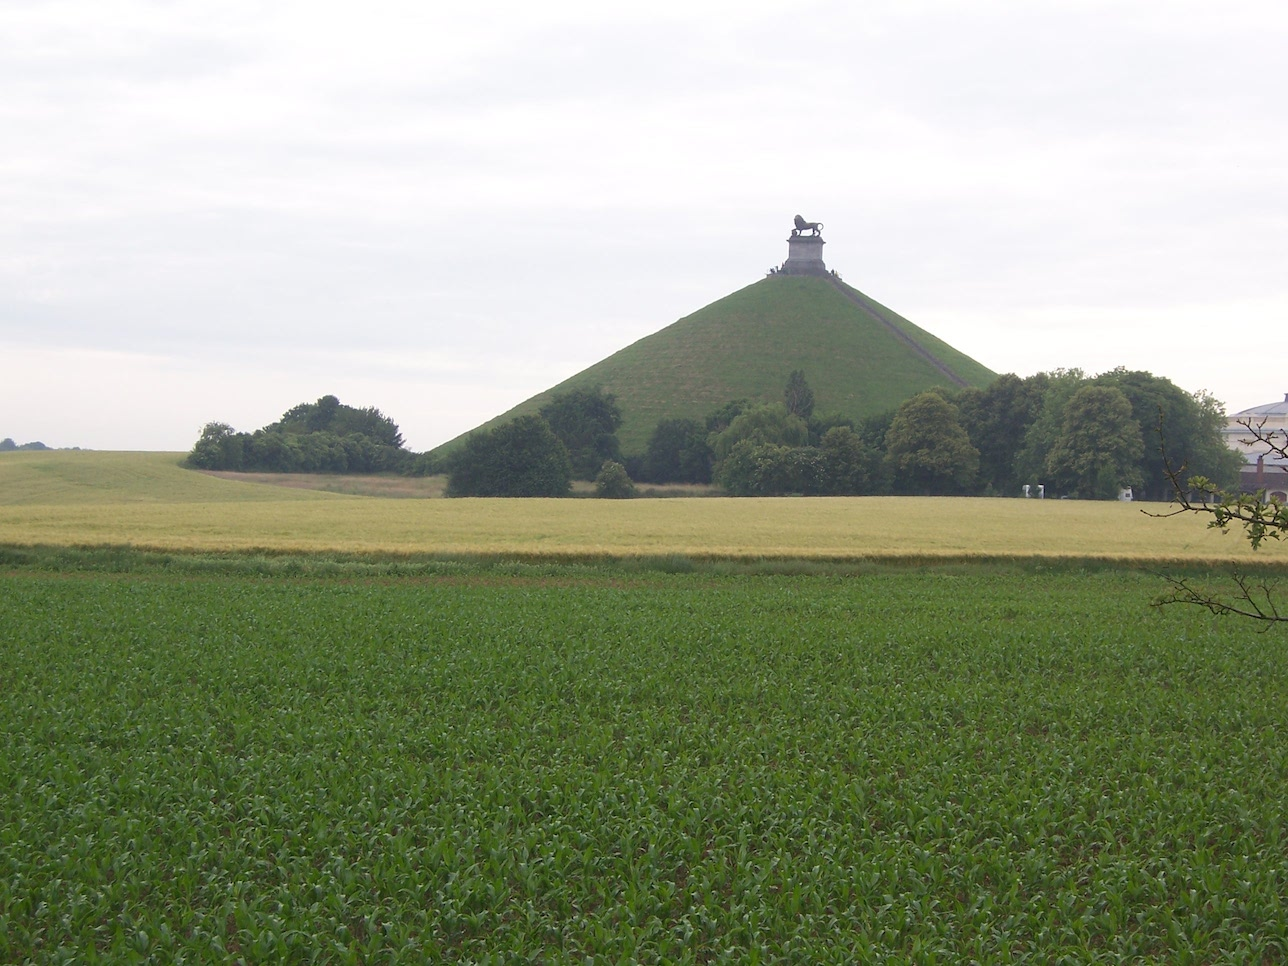 Butte du Lion on the battlefield of Waterloo, 2009 © Lemuel Lyes